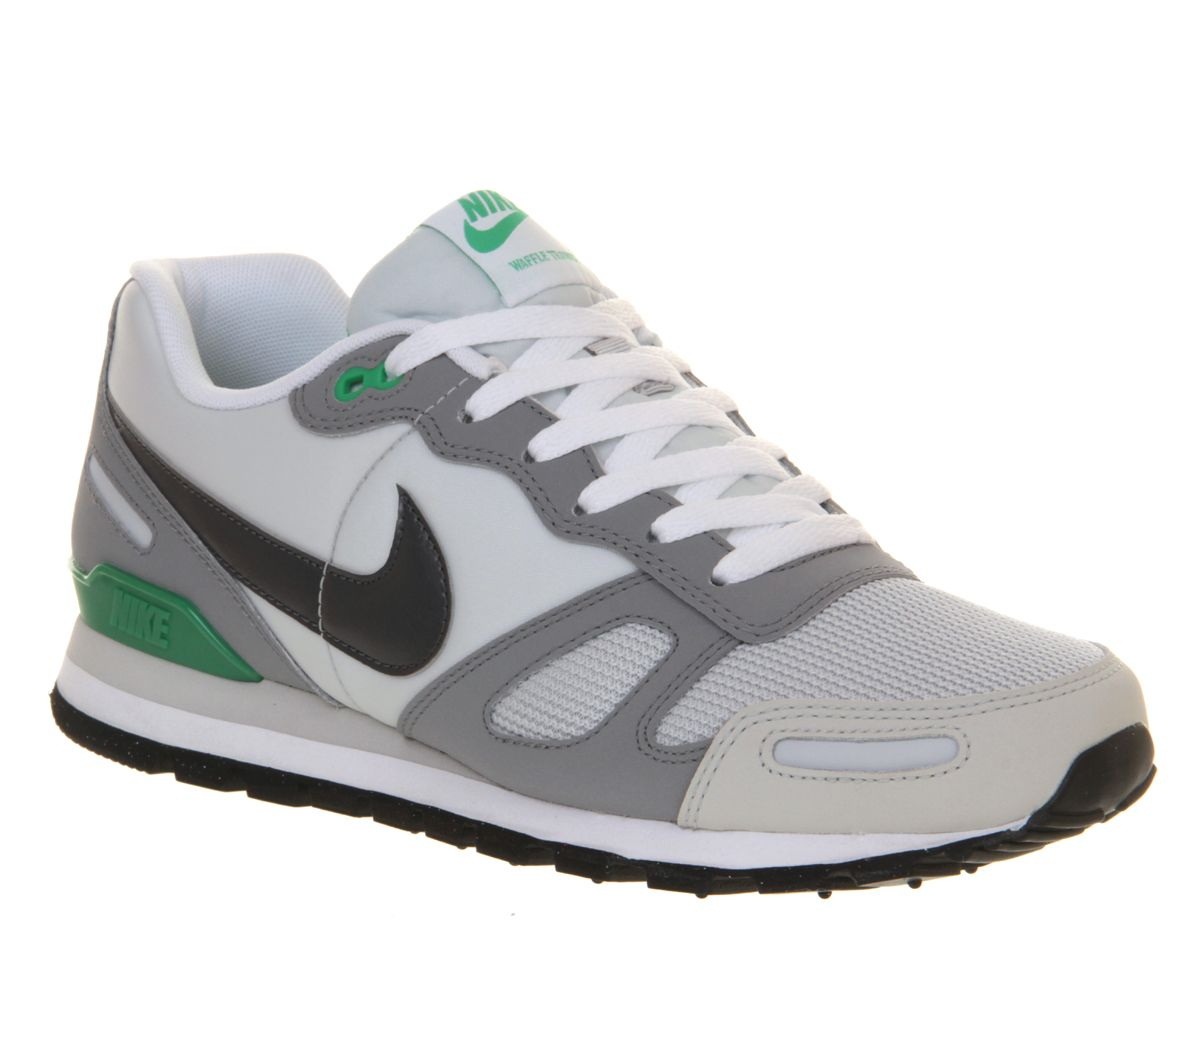 Nike Air Waffle Trainer Dark Grey White Green - His trainers ... a0672ec23